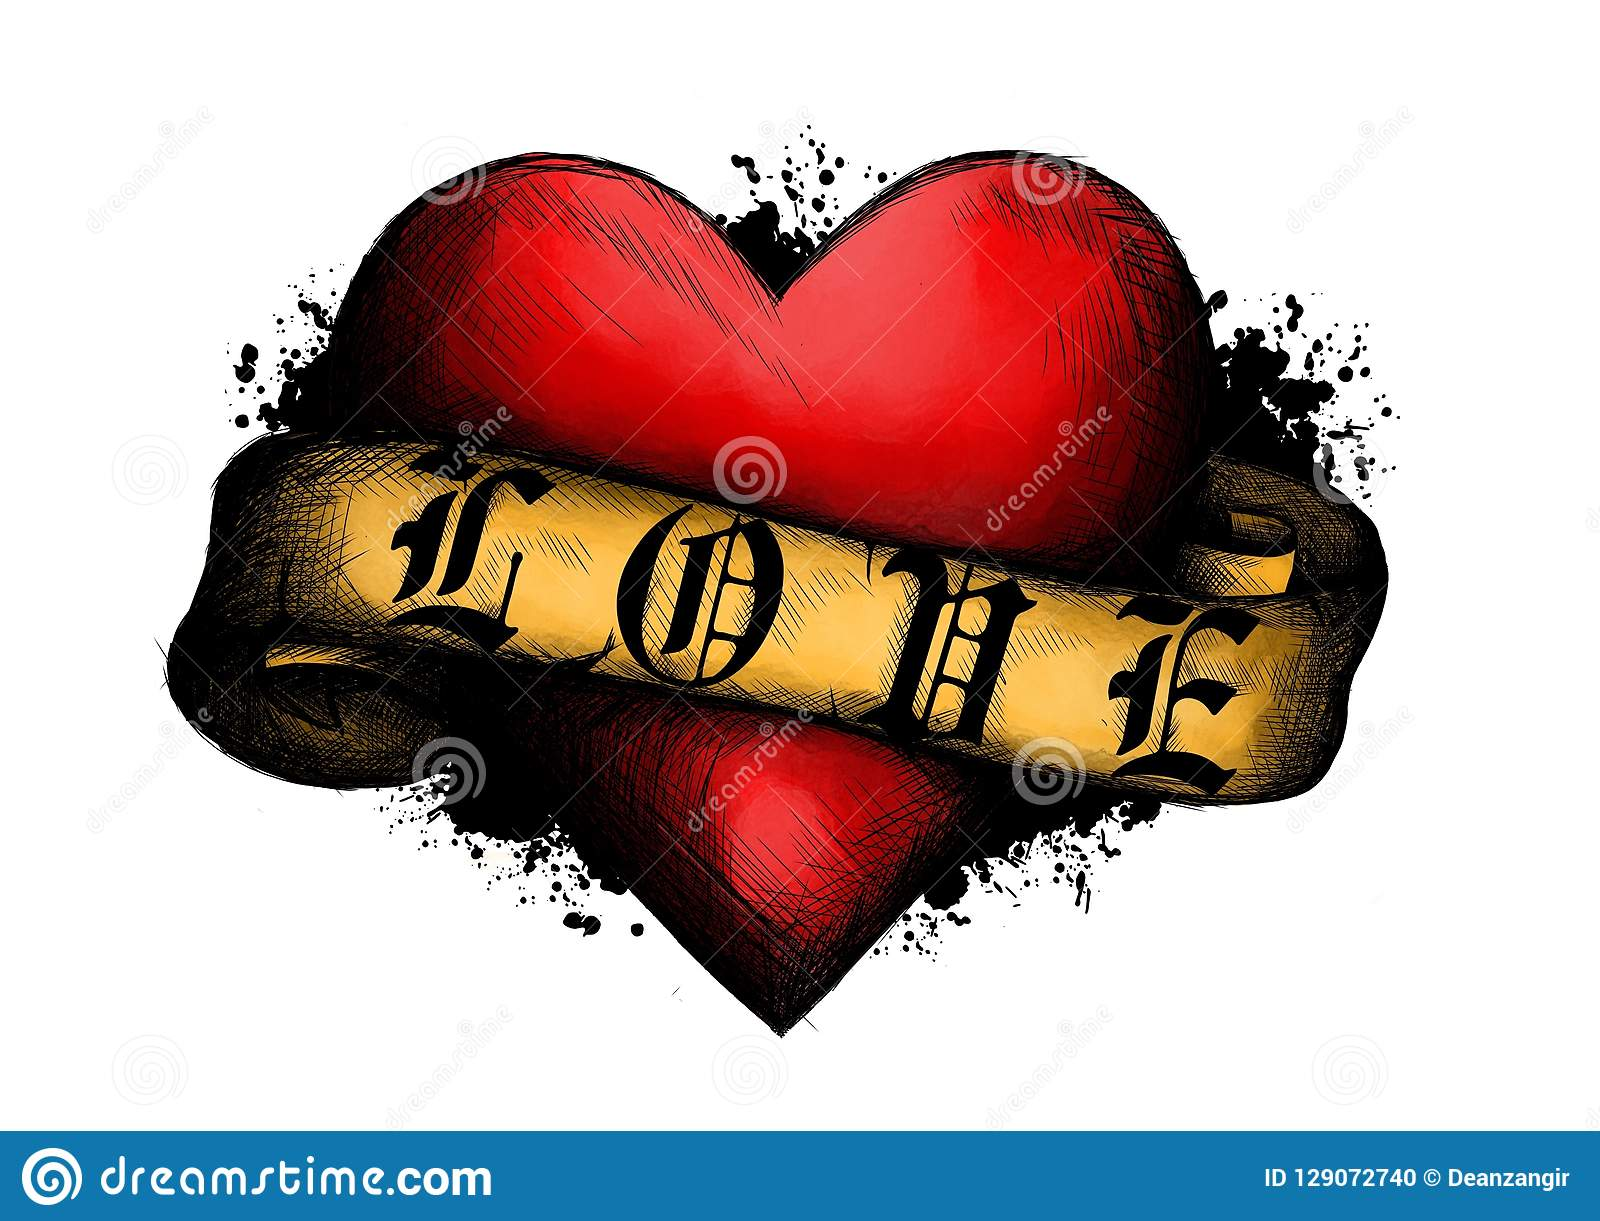 Tattoo Heart Ribbon Stock Illustrations 2 559 Tattoo Heart Ribbon Stock Illustrations Vectors Clipart Dreamstime